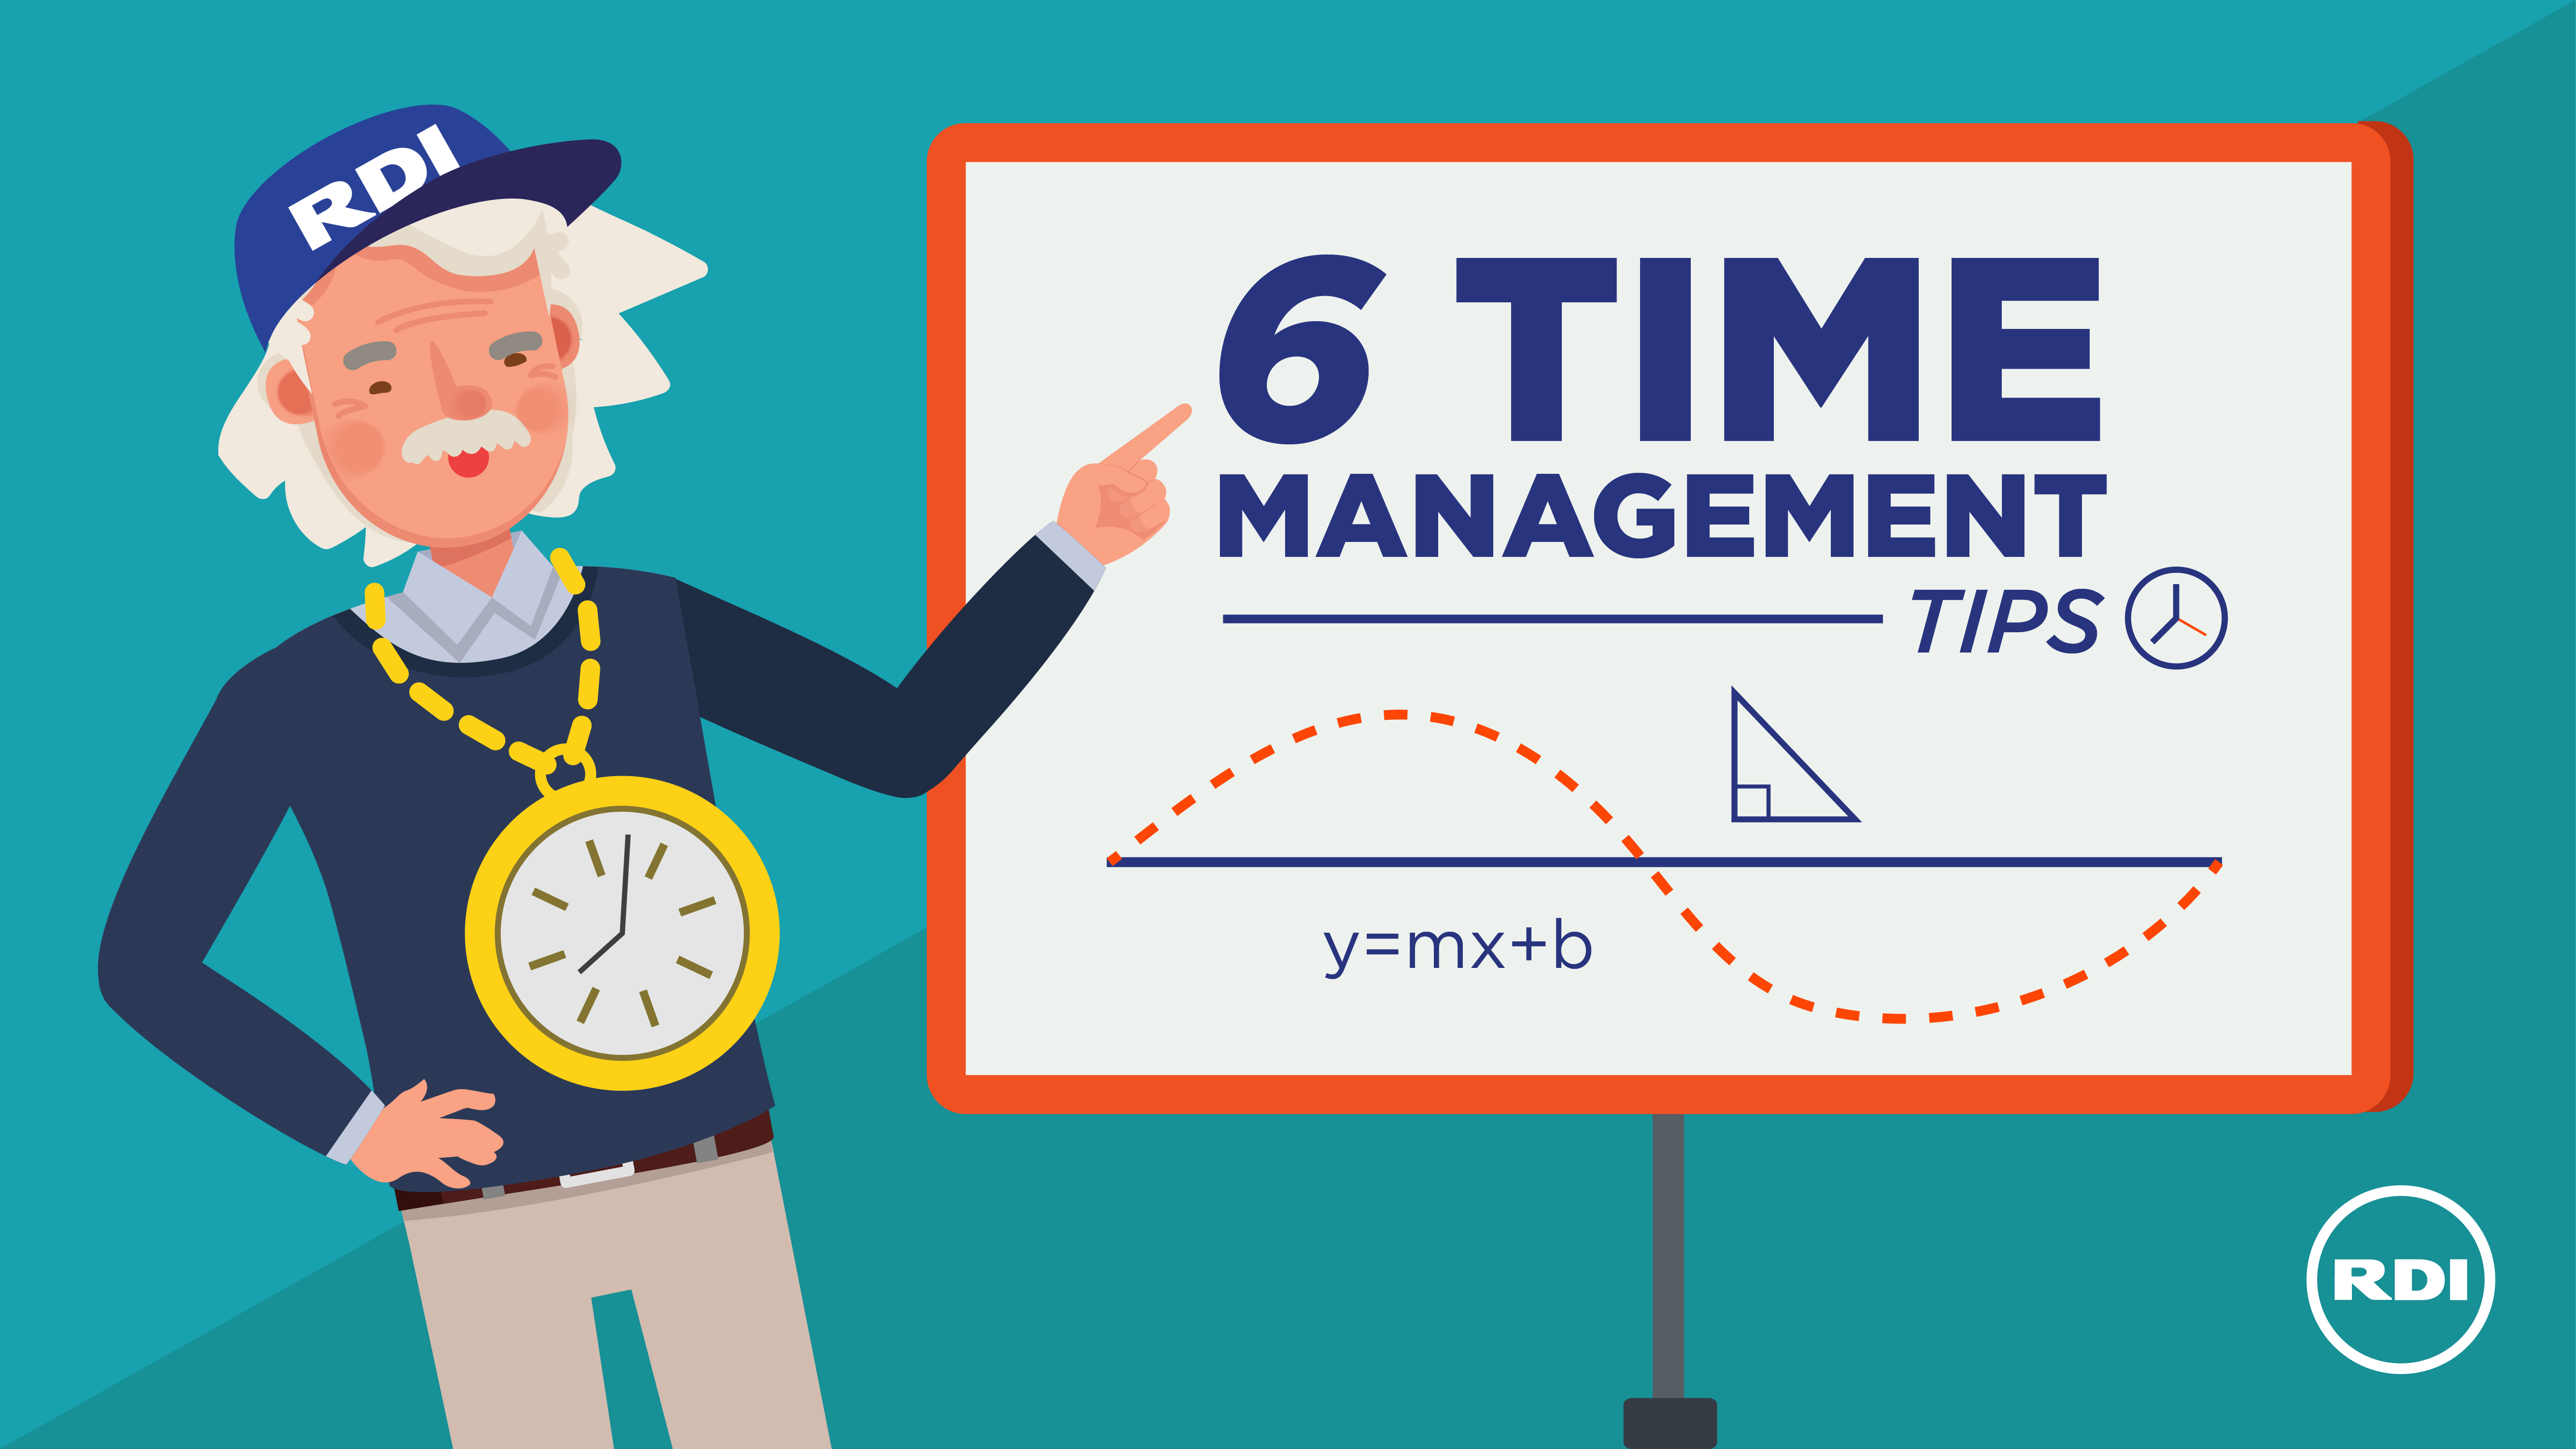 RDI Corporation - 6 Time Management Tips